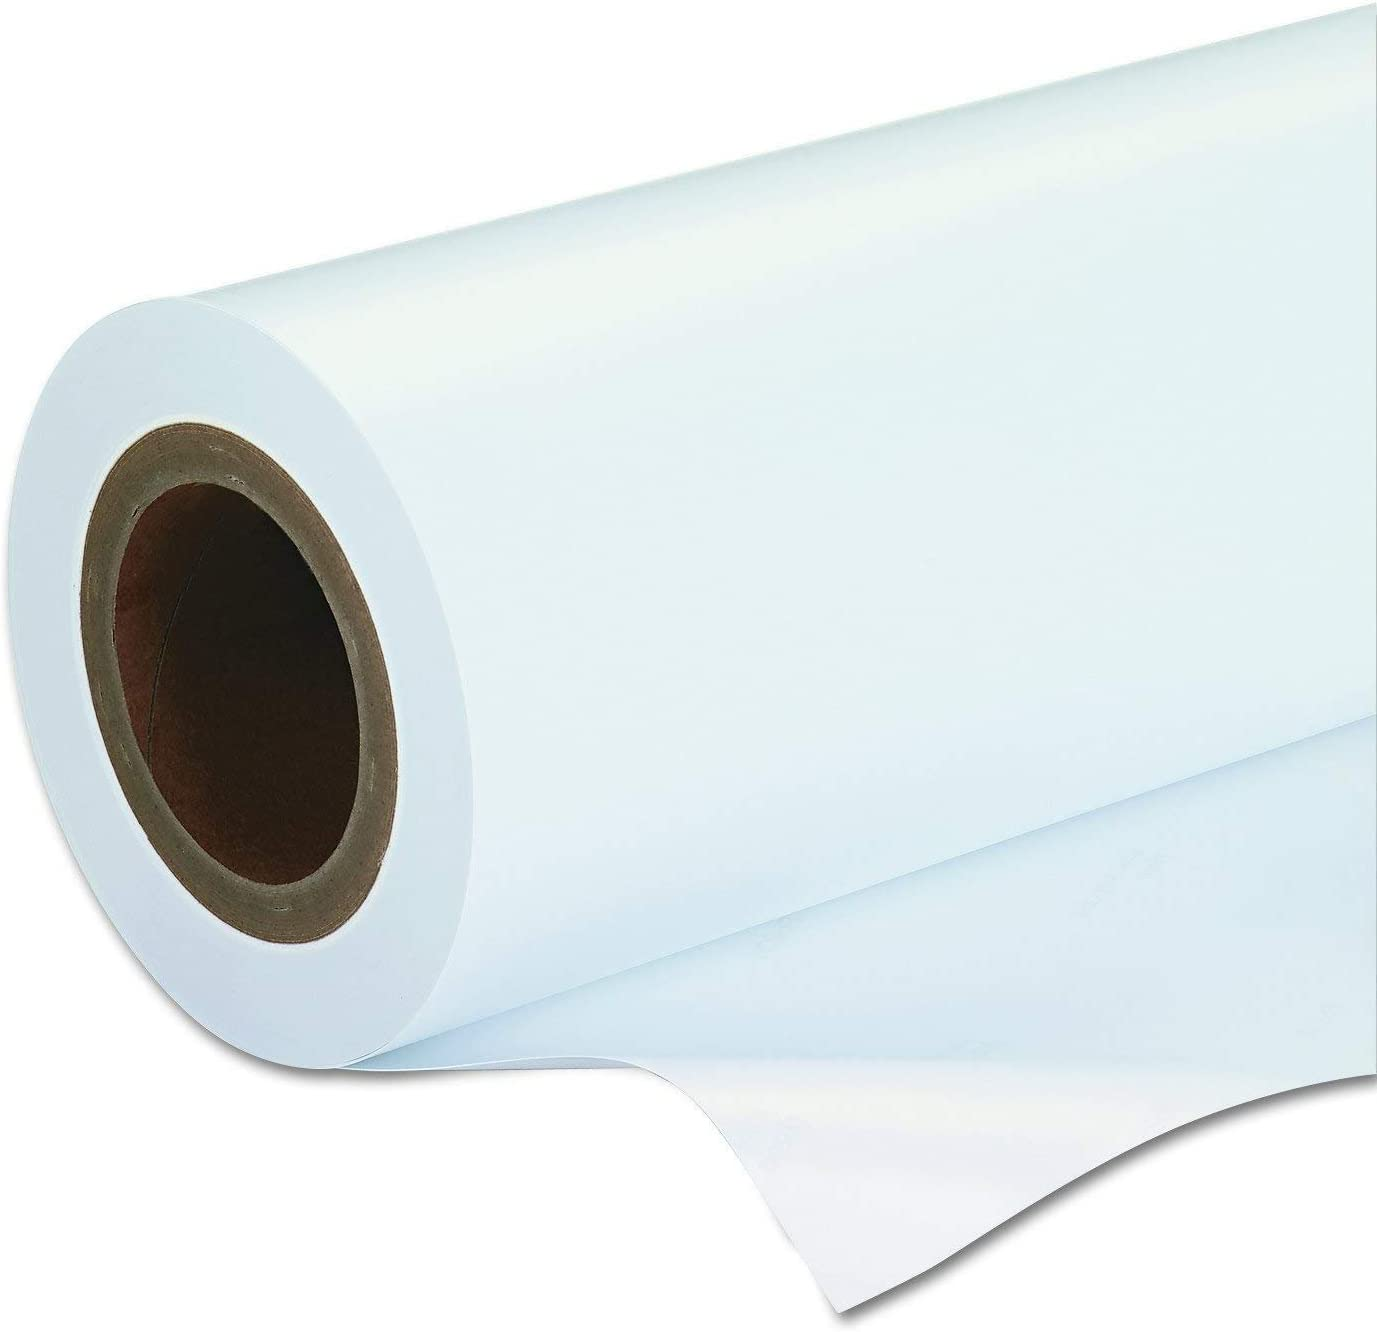 "B00006B7OZ Epson S041385 Doubleweight Matte Paper, 24"" x 82 ft, White 61UYcx2Br8BL"